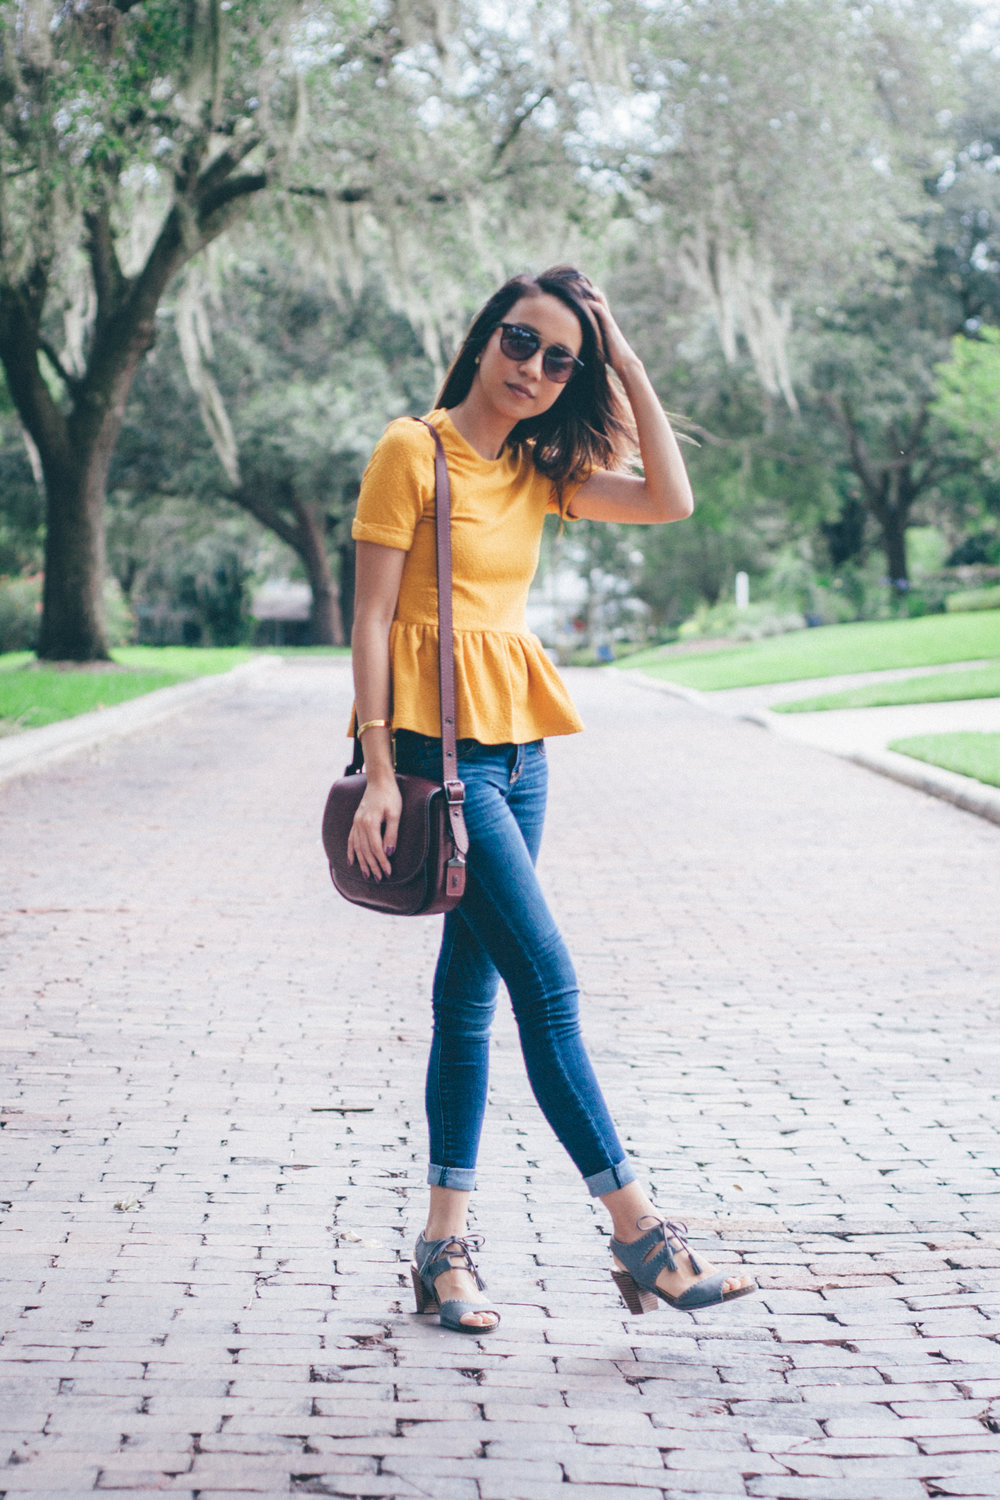 This Jenn Girl - Shein Yellow Peplum 2